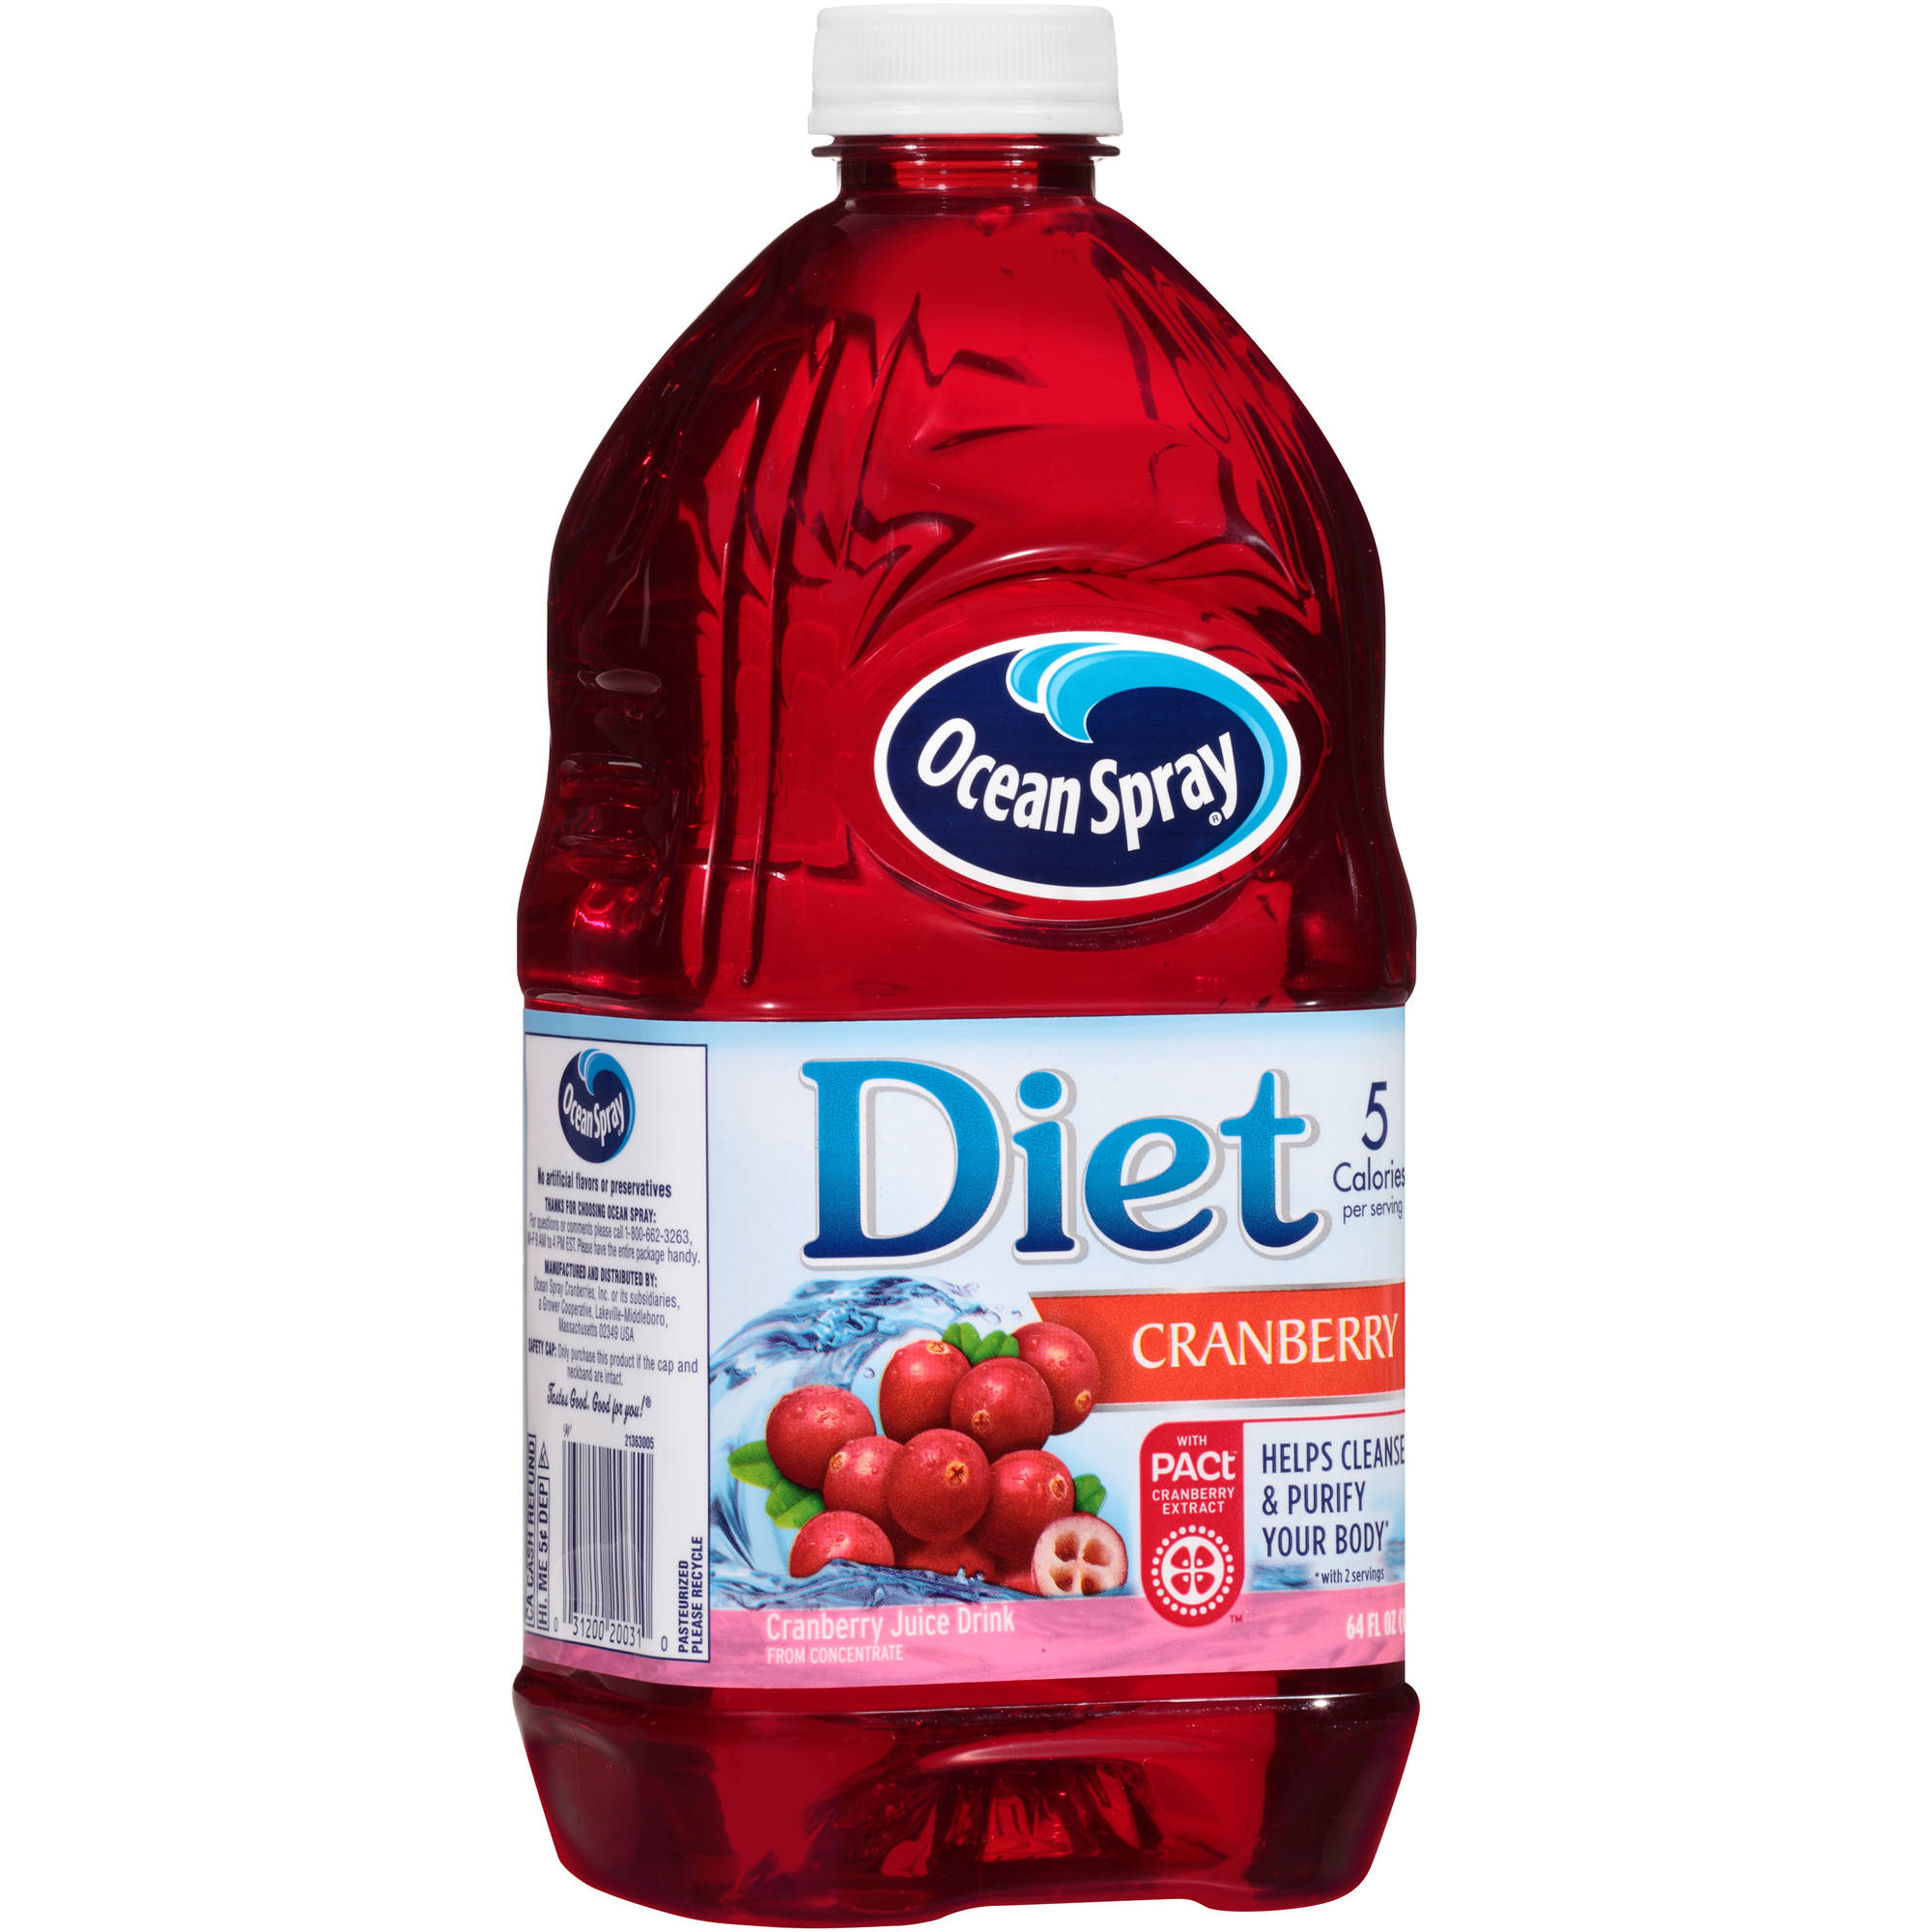 Ocean Spray Diet Cranberry Spray Juice, 64 Fl Oz